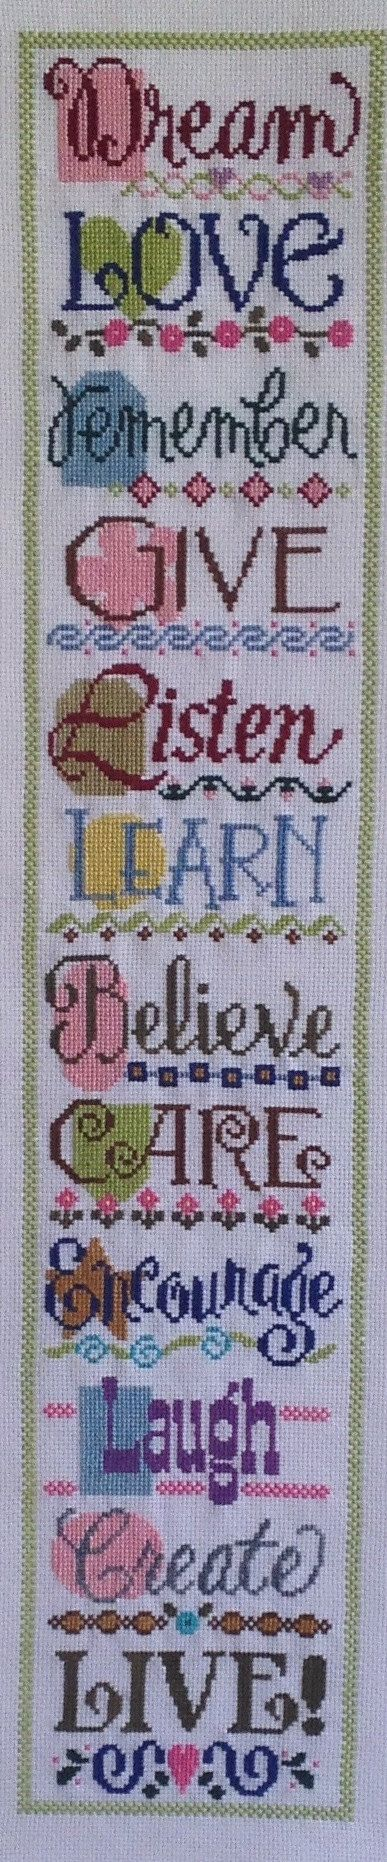 Completed finished cross stitch Living with by ActsChristianGifts, $49.99